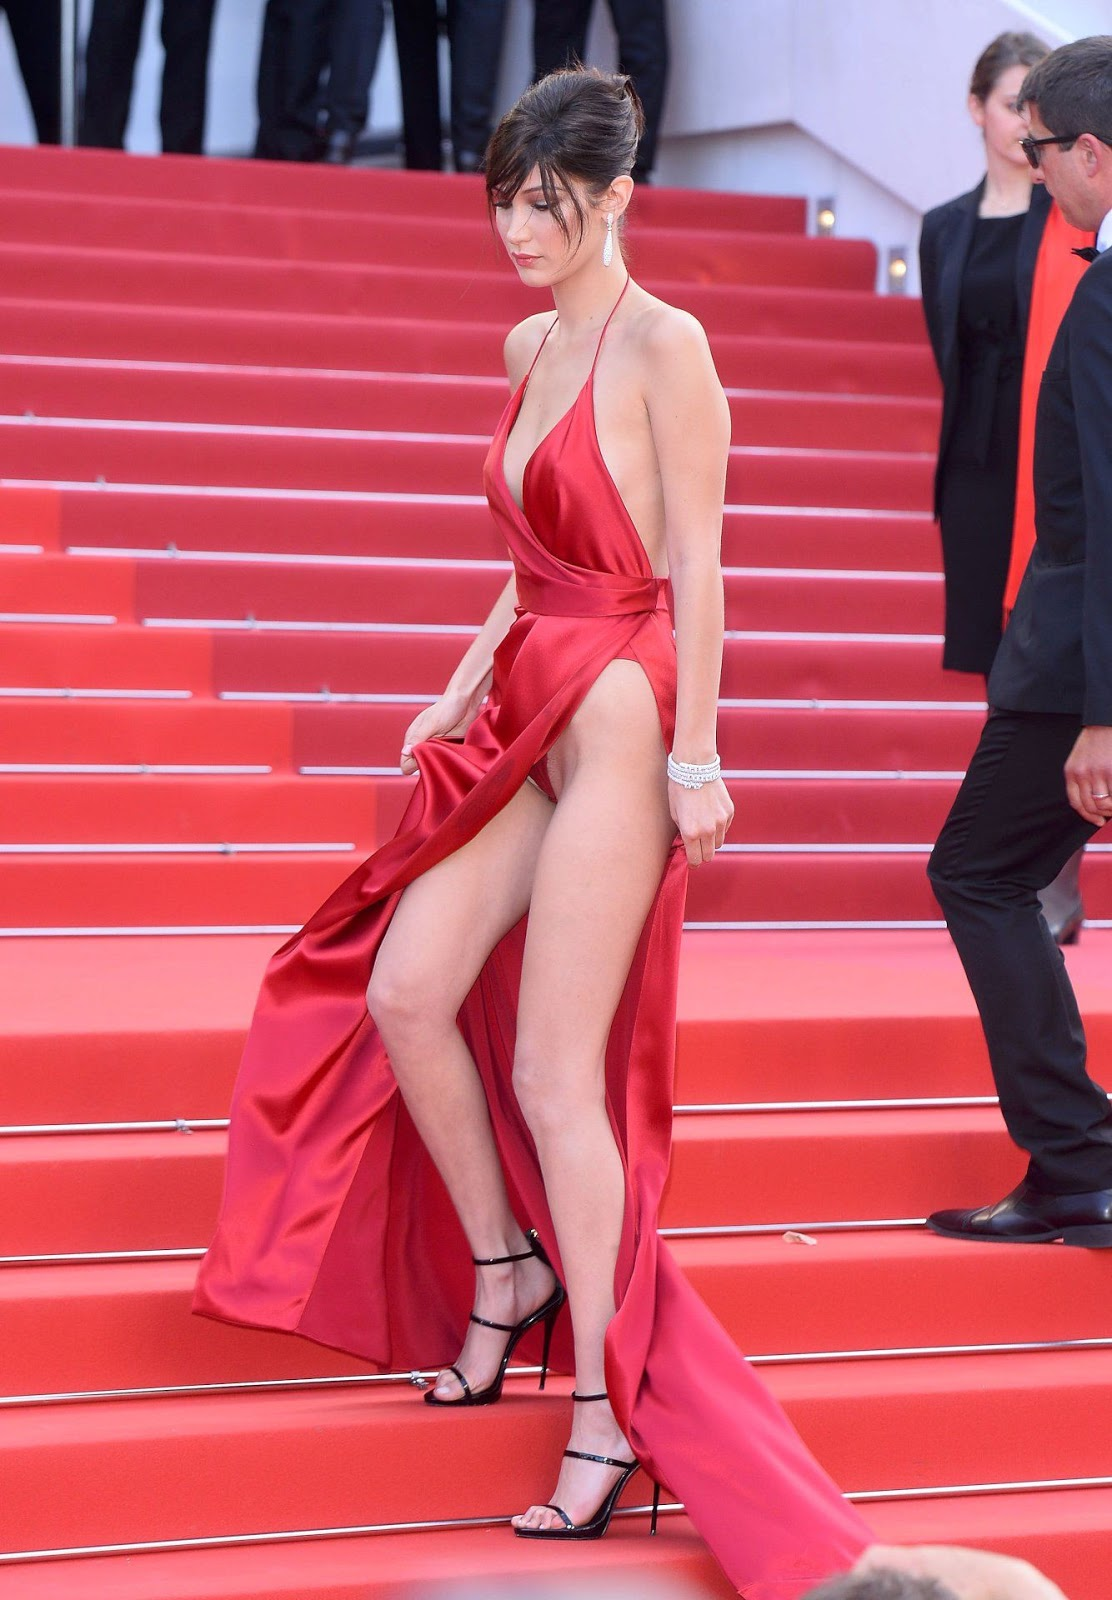 Bella Hadid wears the sexiest gown ever at Cannes Film Festival